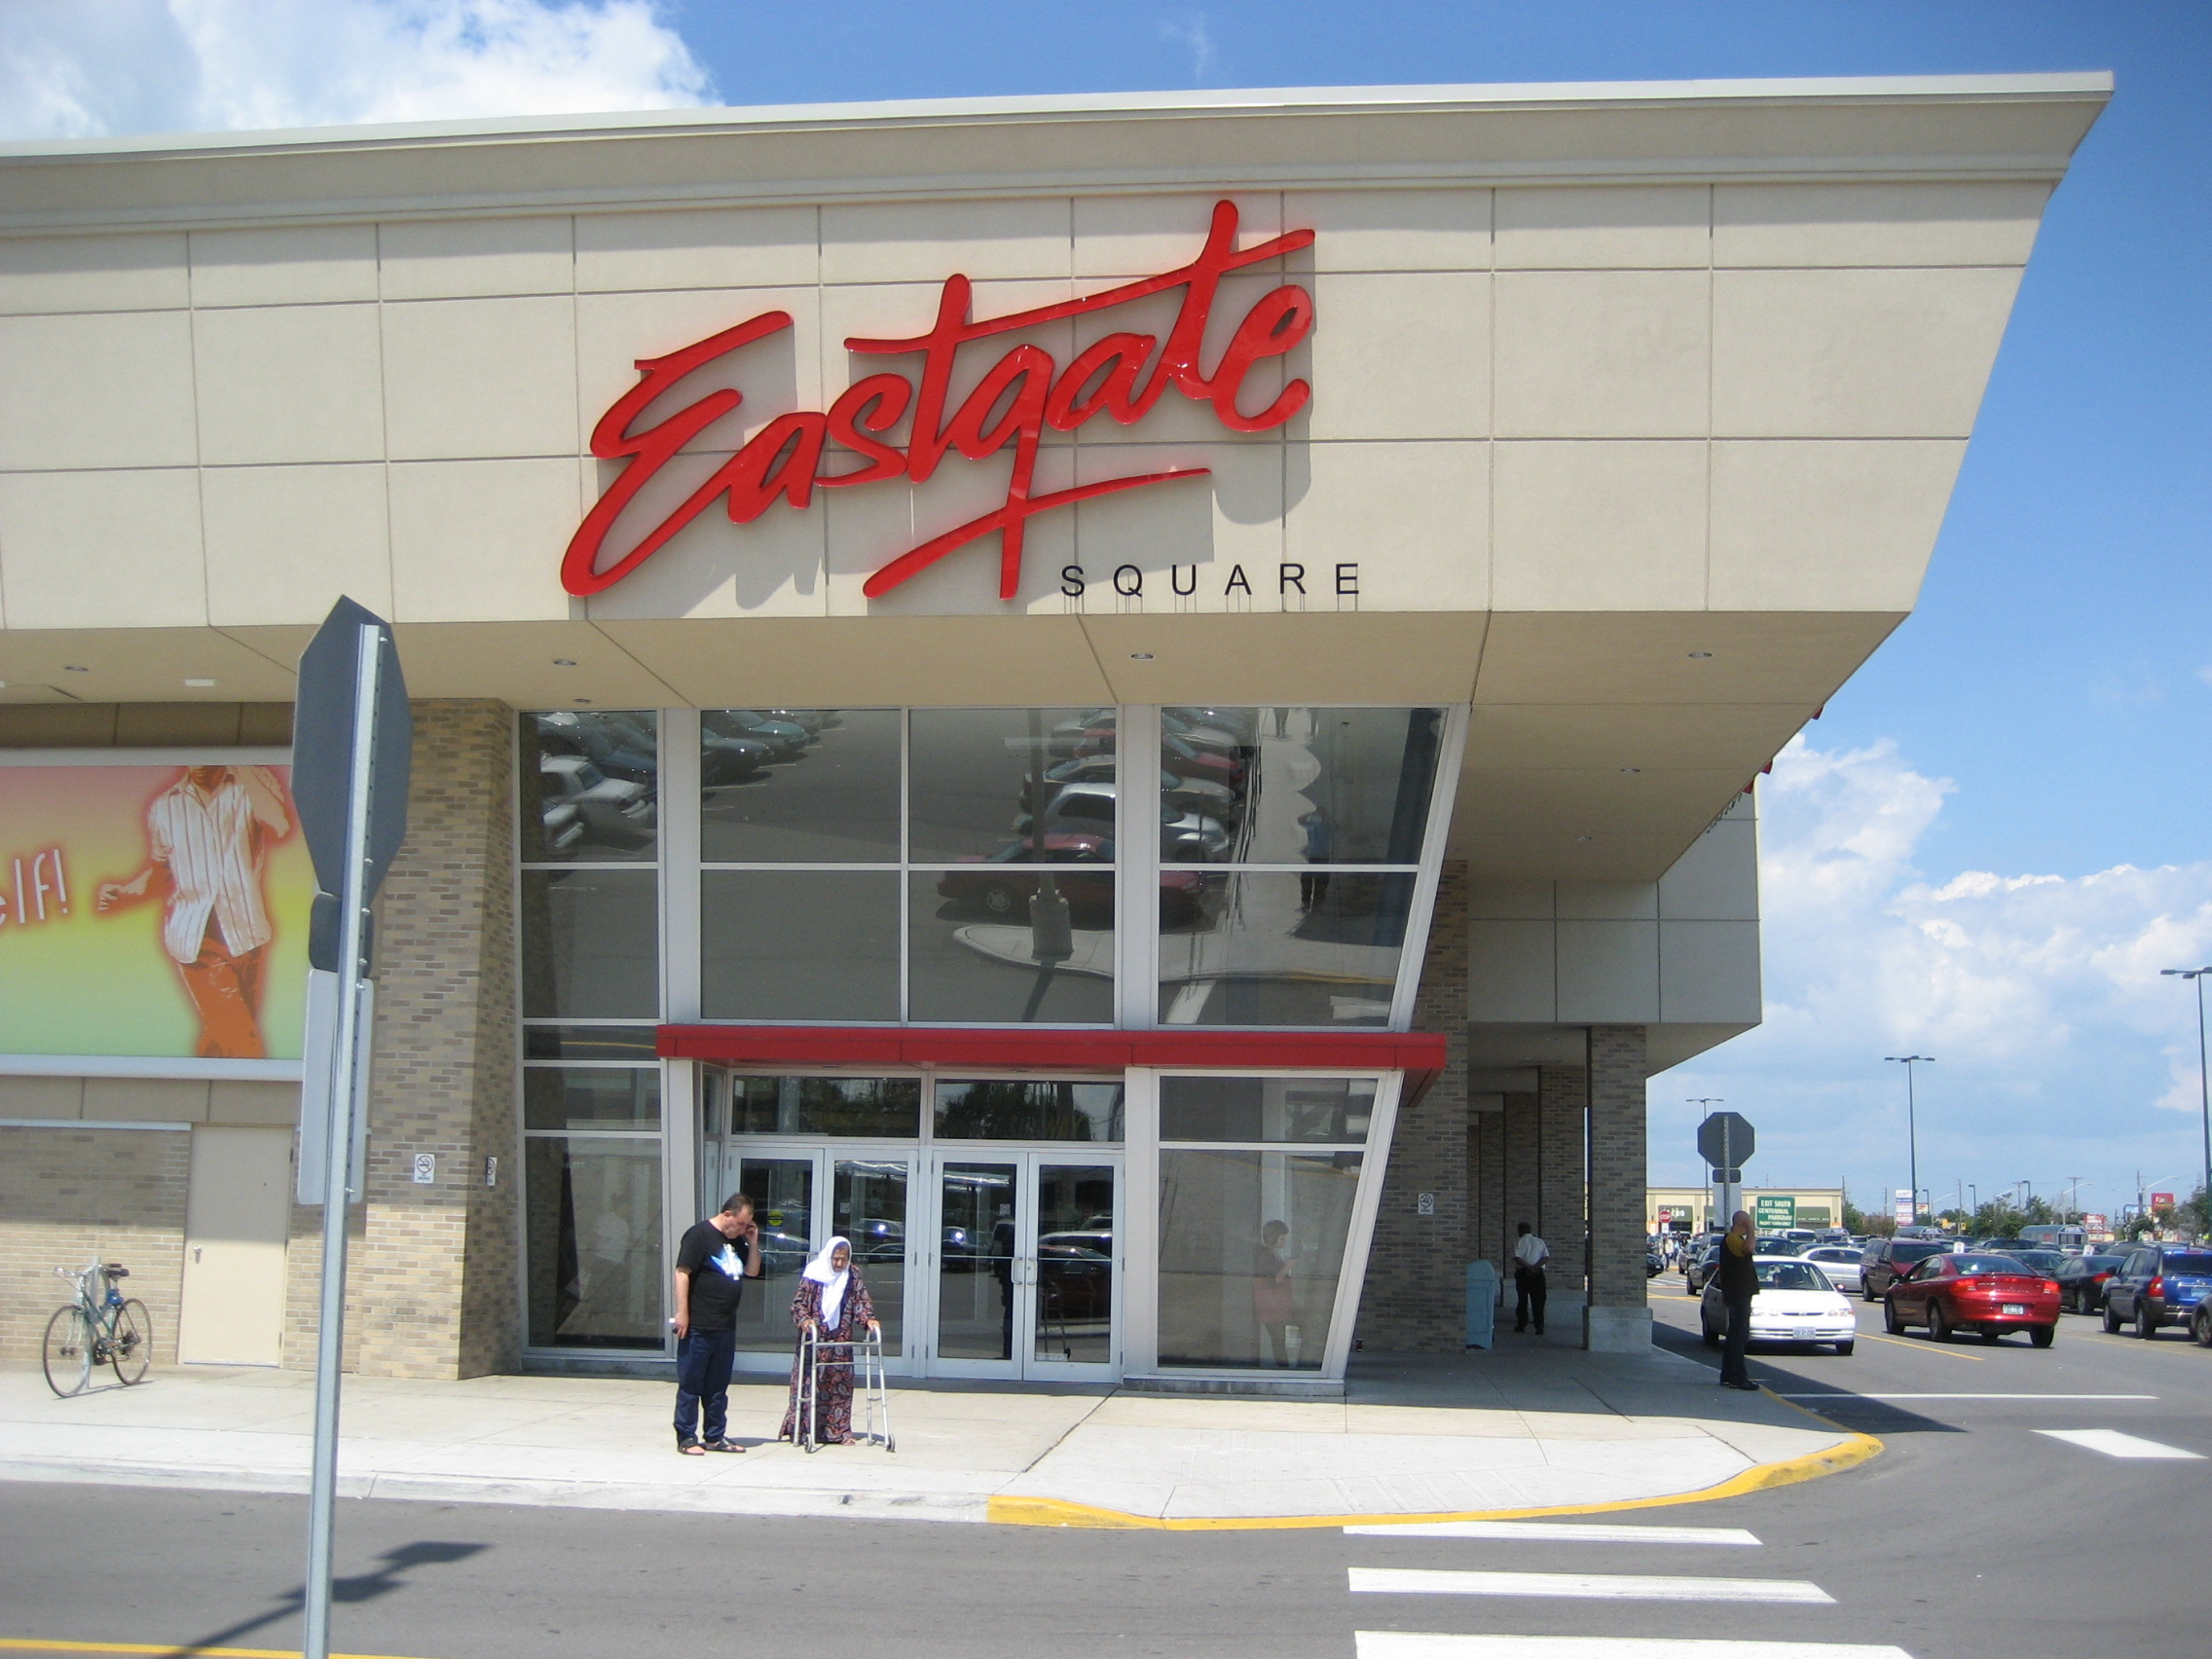 Food Court Square One Mississauga